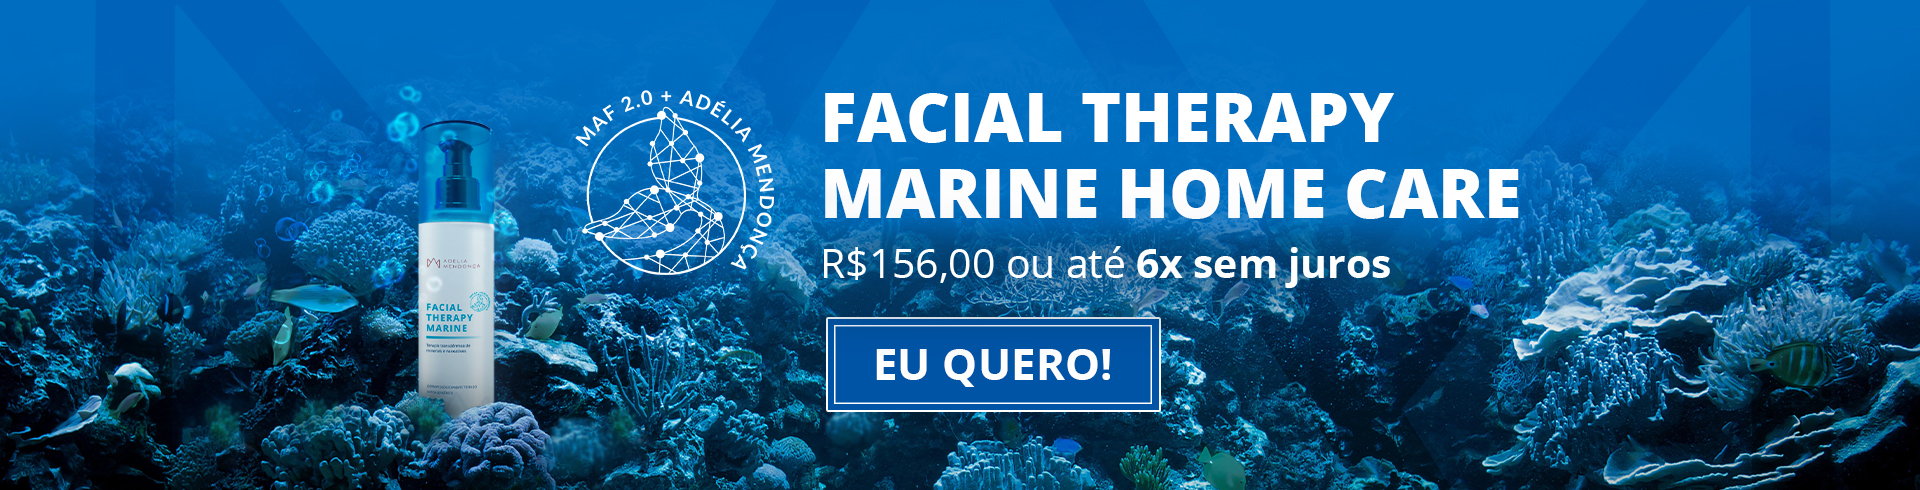 Facial Therapy Marine